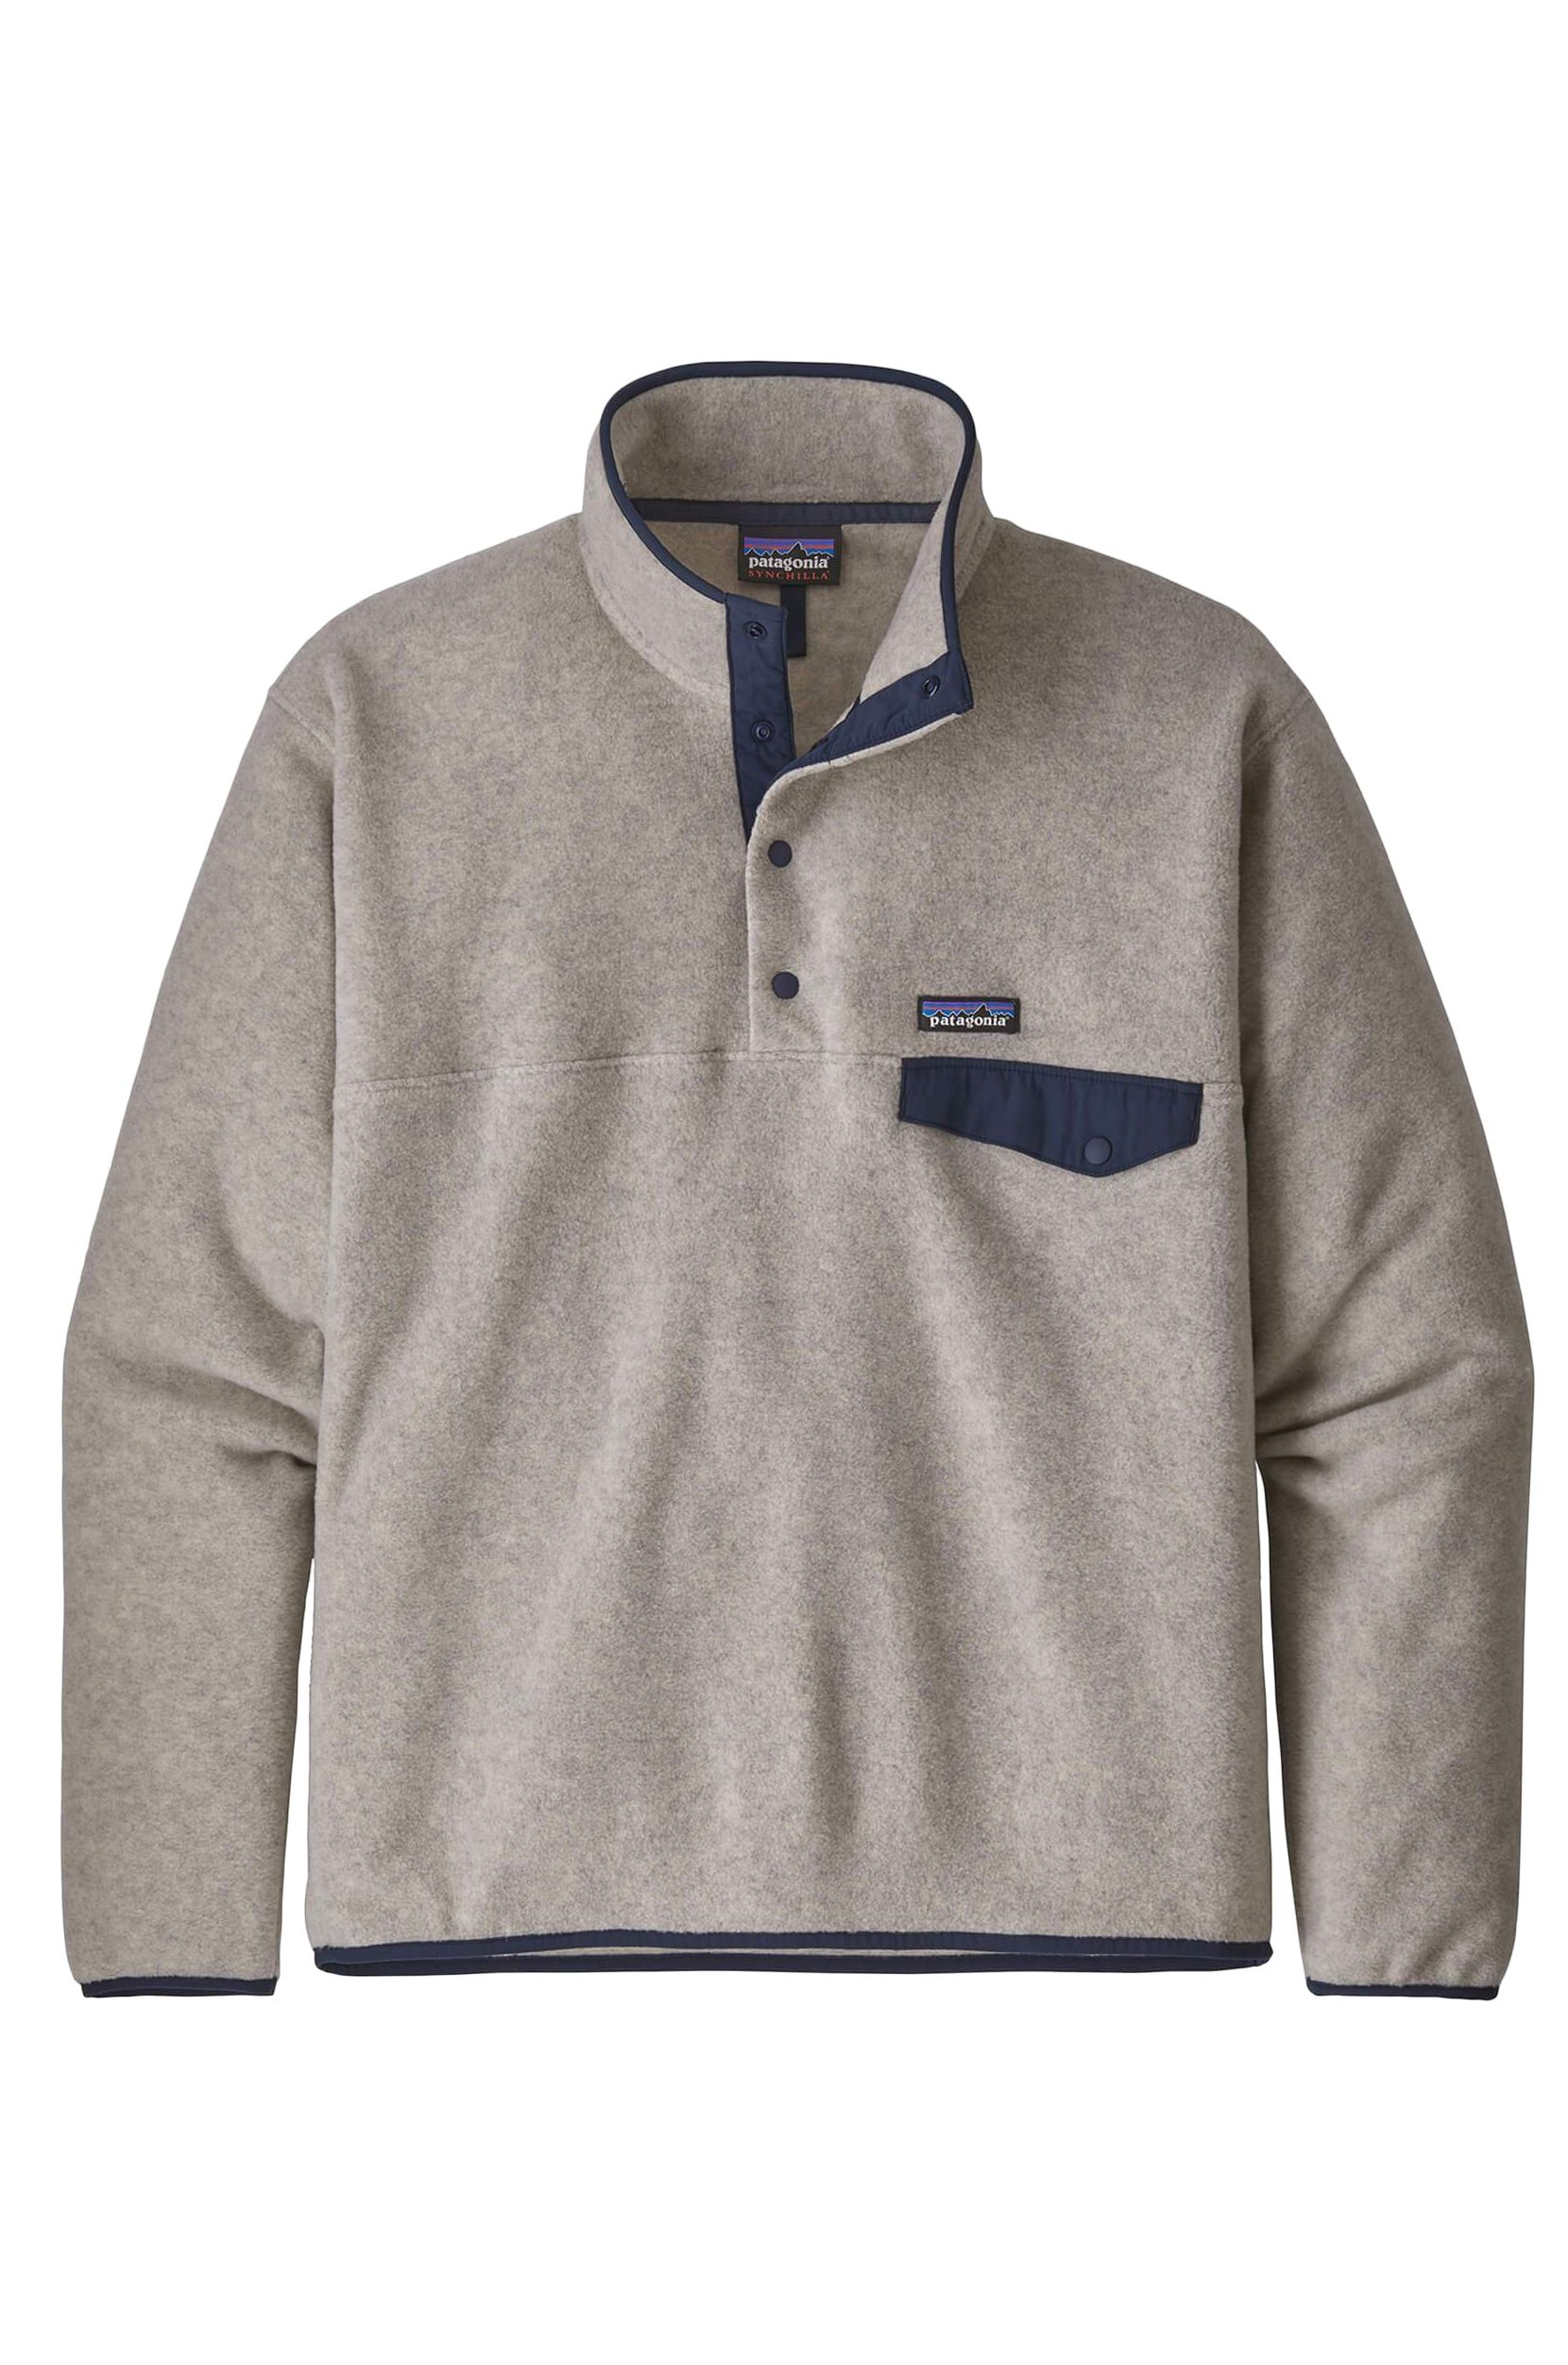 Sweat Polar Patagonia M'S SYNCH SNAP-T P/O Oatmeal Heather